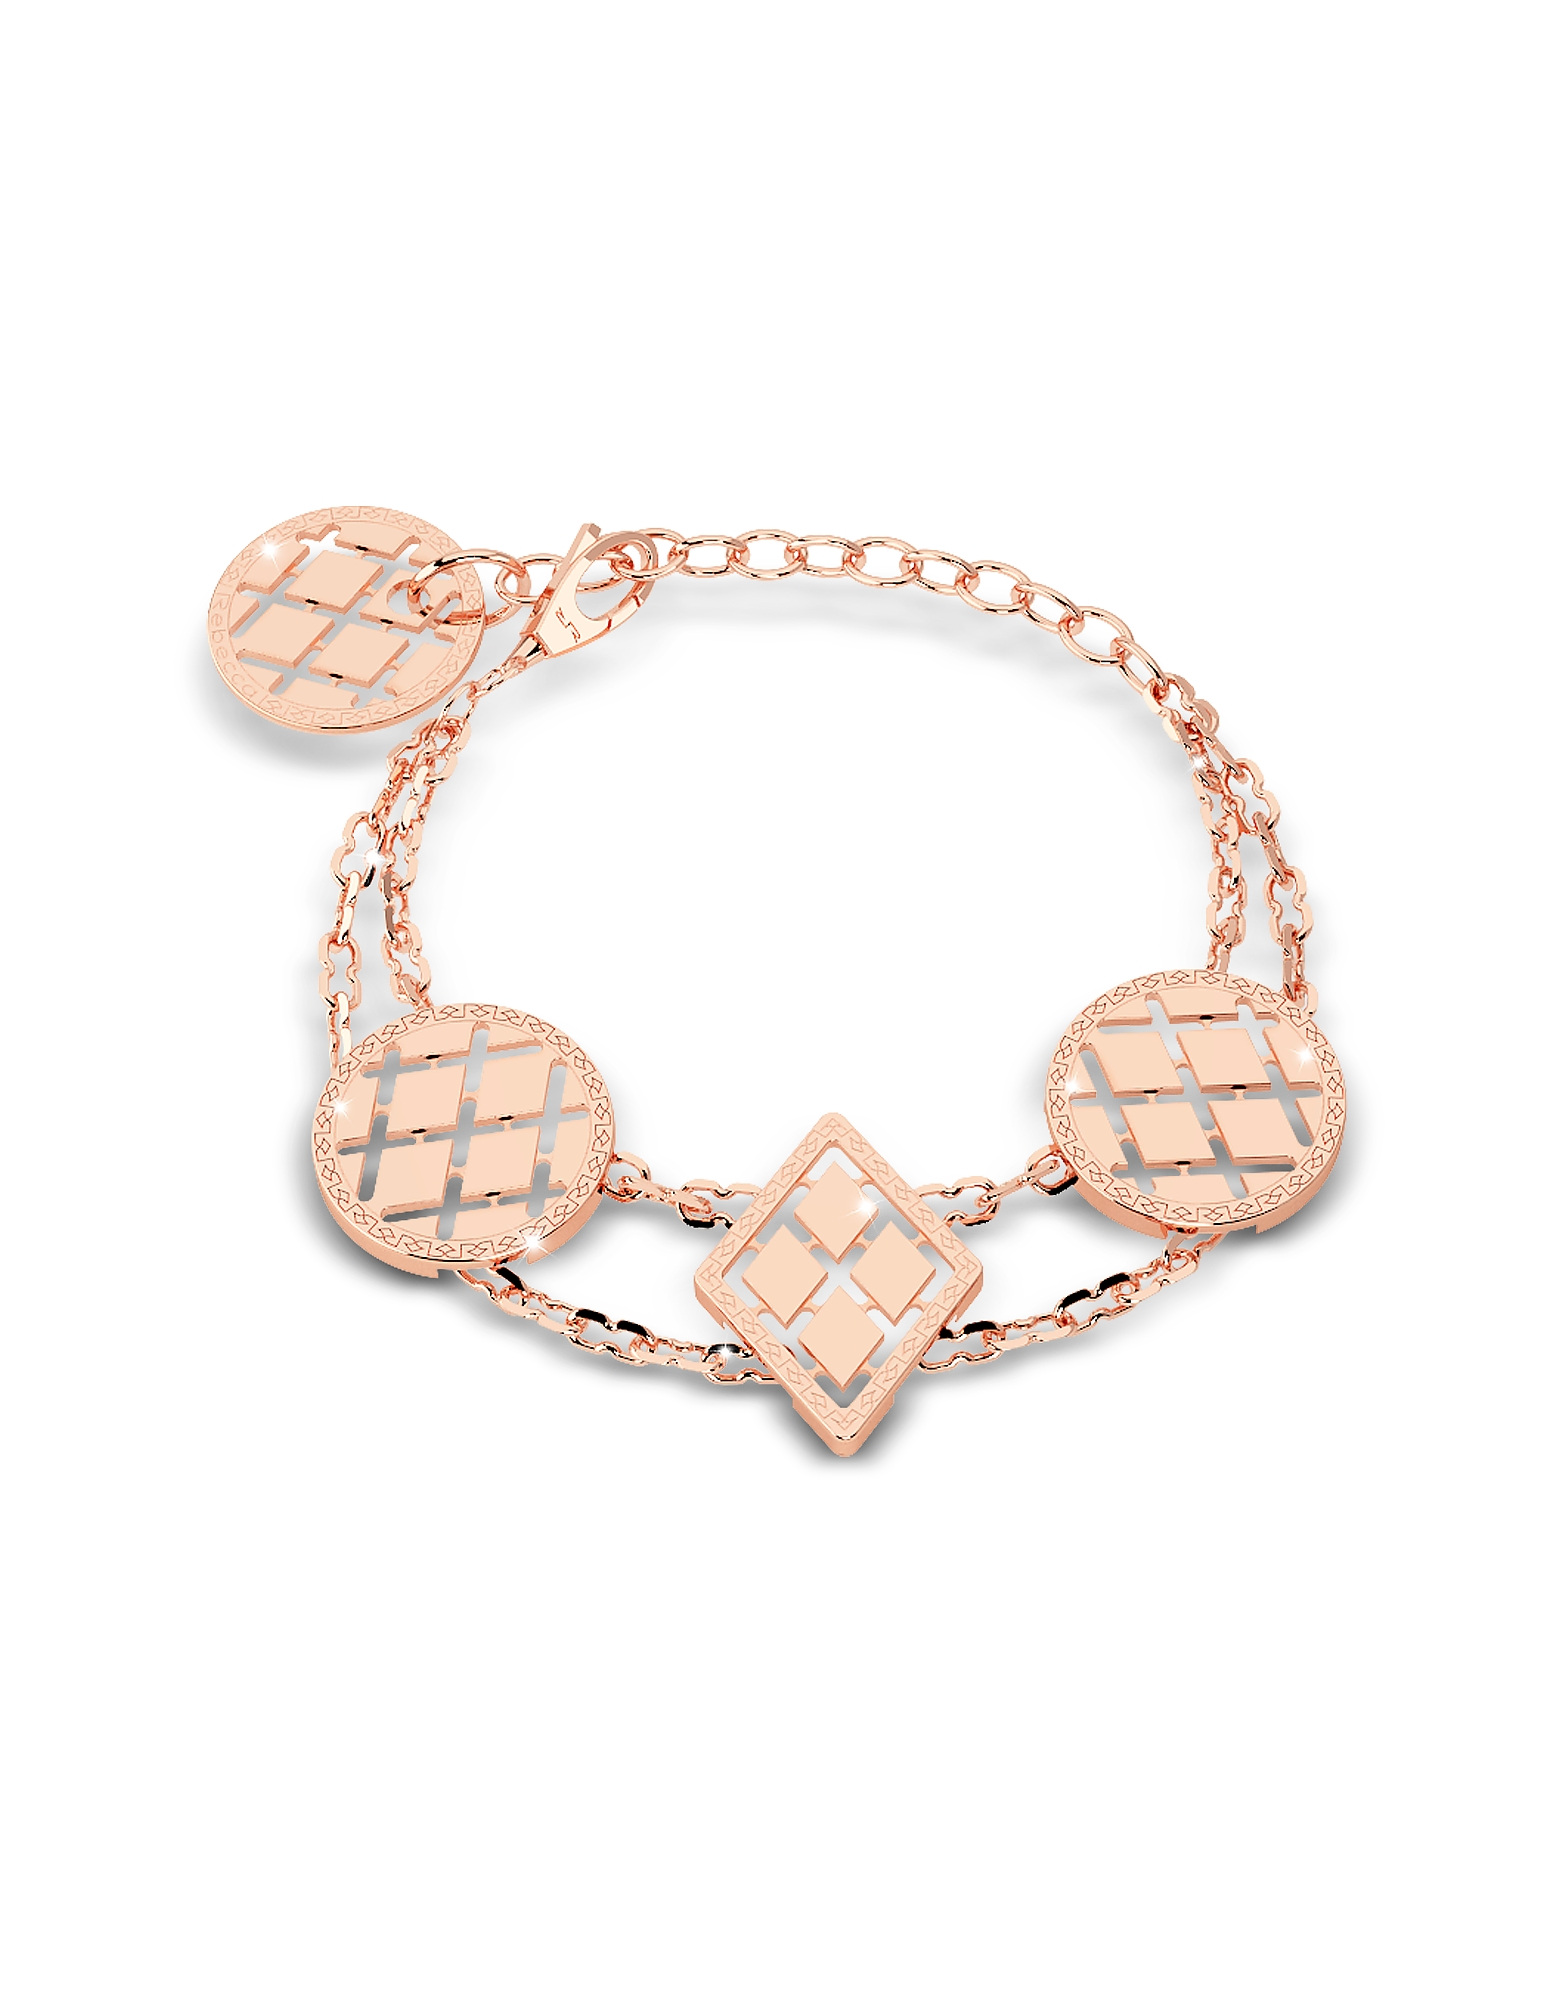 Rebecca Bracelets, Melrose Rose Gold Over Bronze Bracelet w/Geometric Charms